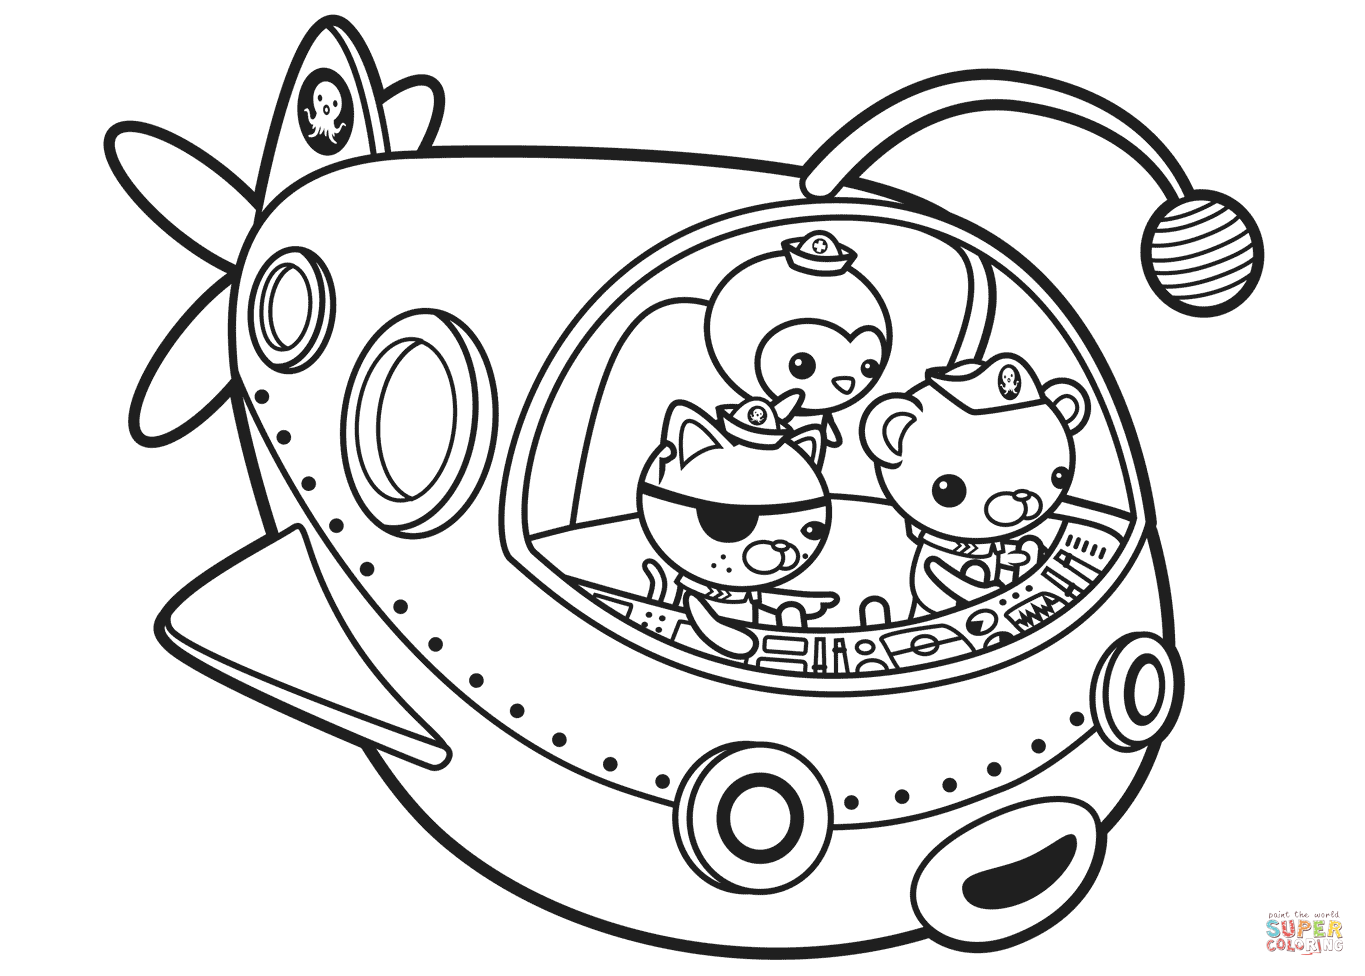 1365x976 Octonauts Coloring Pages In Spaceship Free Prntable Cartoons Tweak